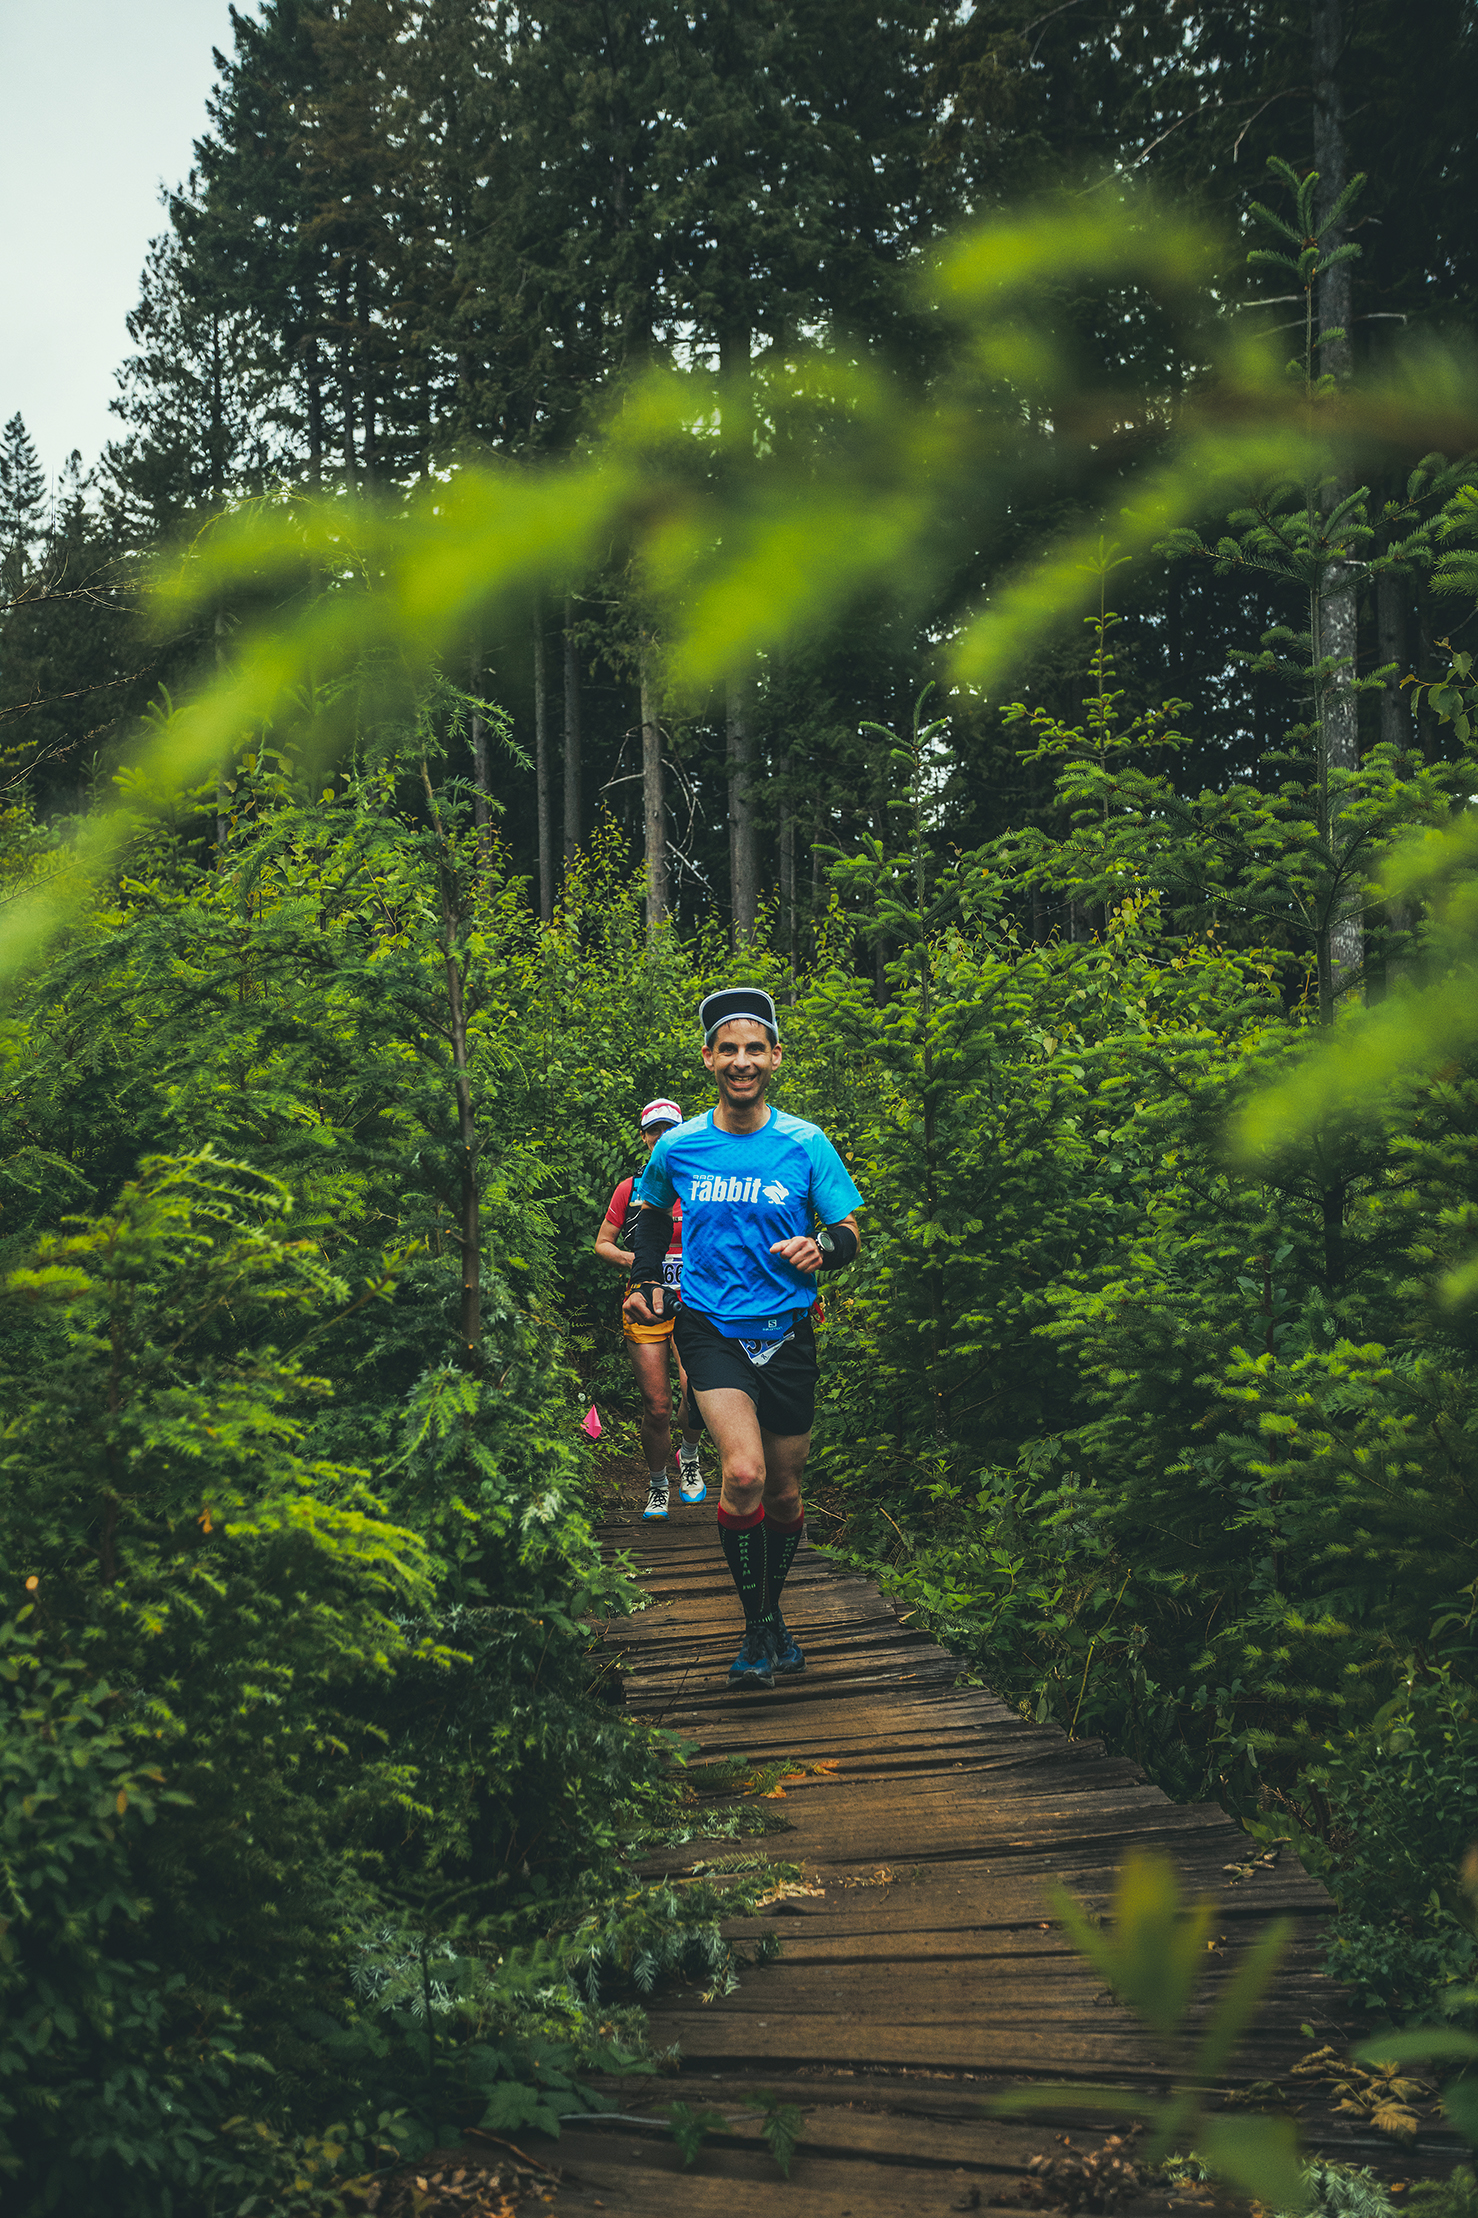 Fraser Valley Trail Races - Bear Mountain - IMG_1439 by Brice Ferre Studio - Vancouver Portrait Adventure and Athlete Photographer.jpg